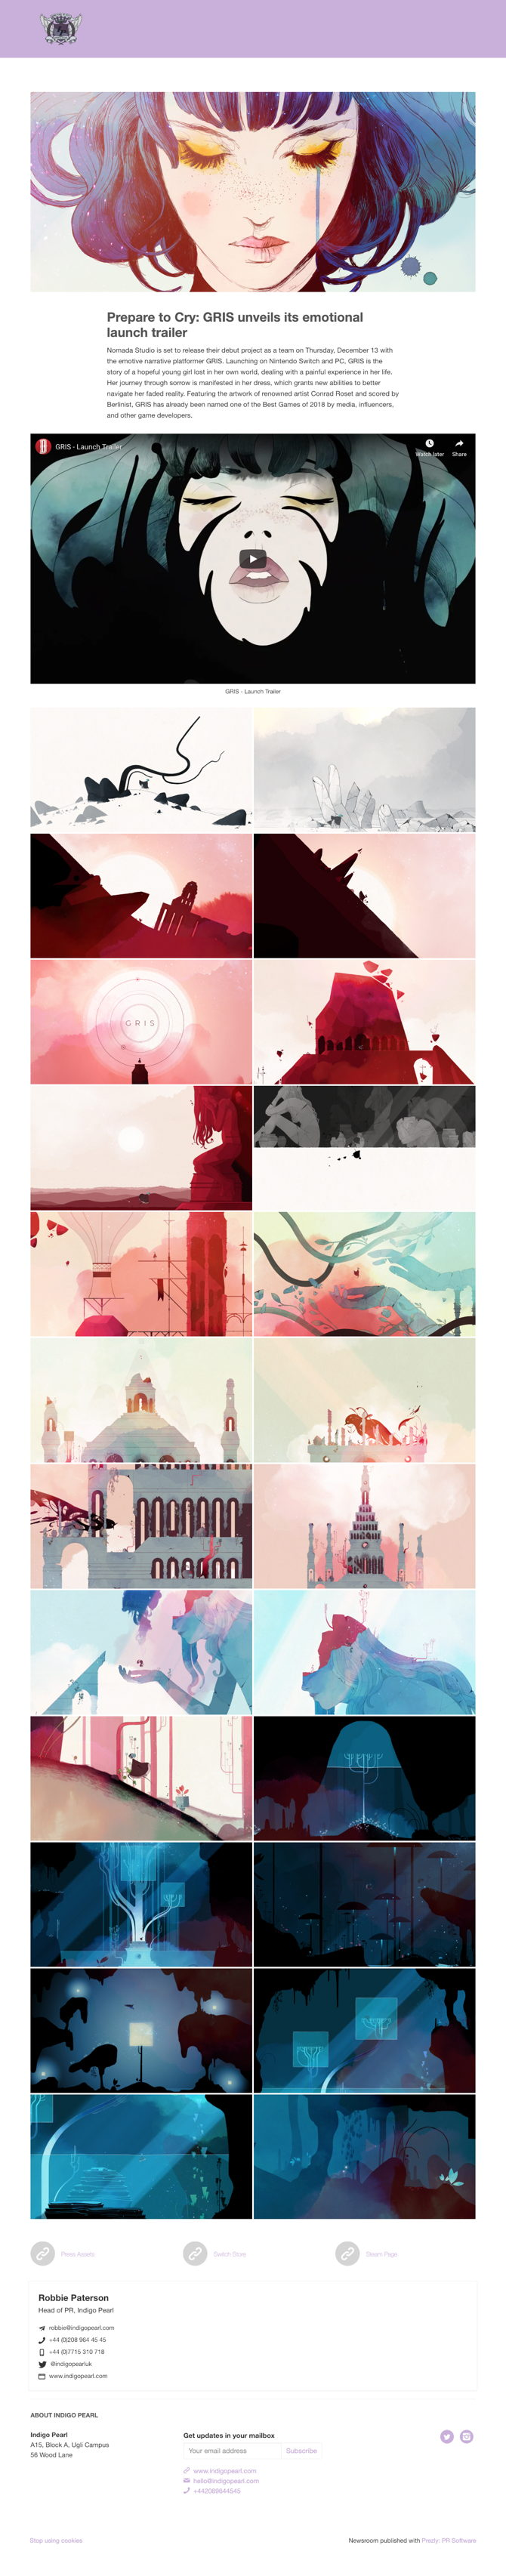 Prepare to Cry: GRIS unveils its emotional launch trailer